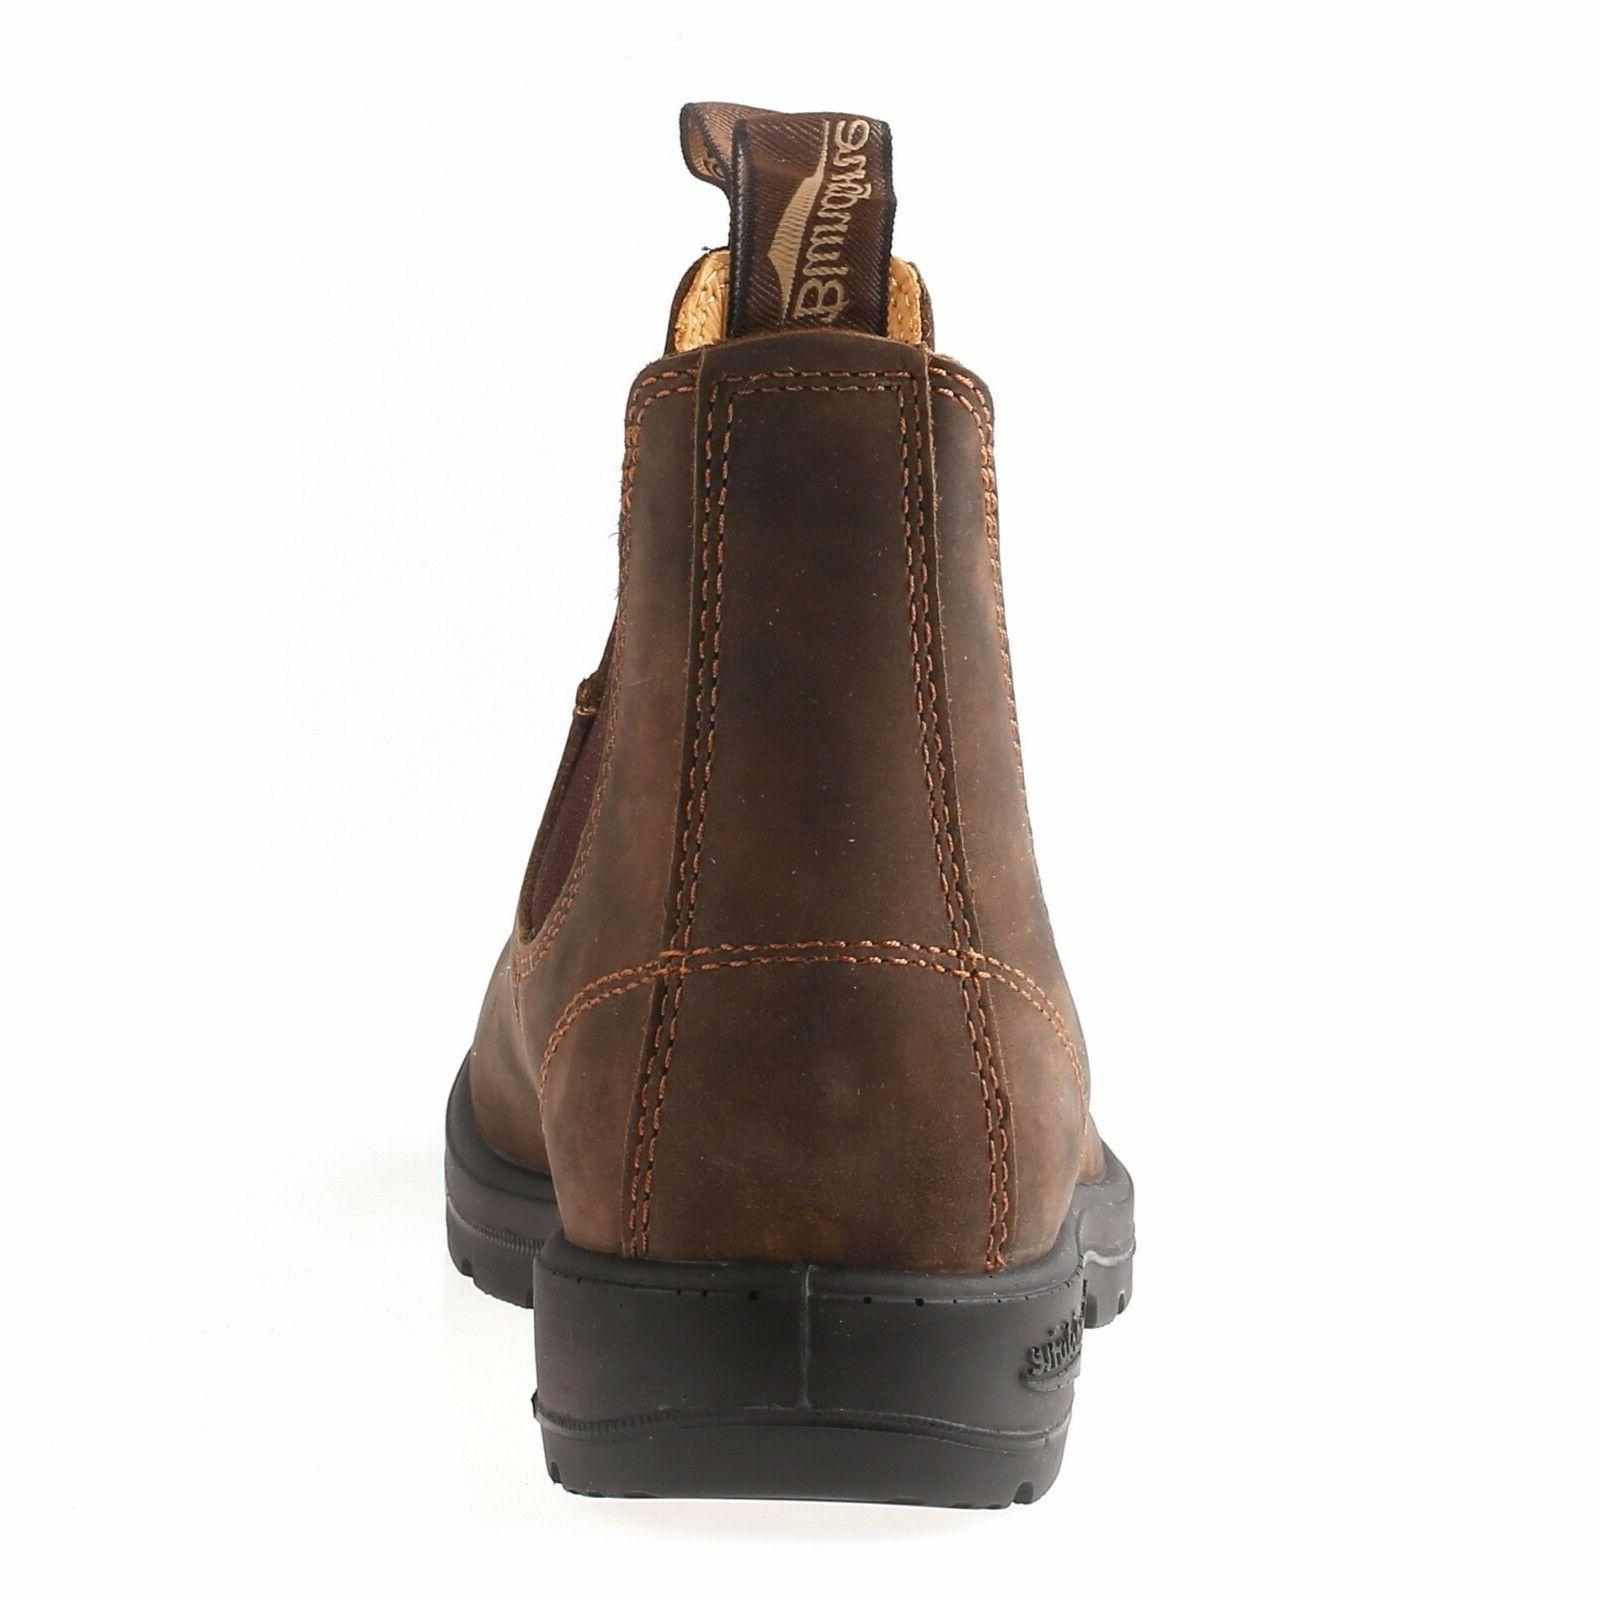 NEW Style Rustic Brown Leather For Women